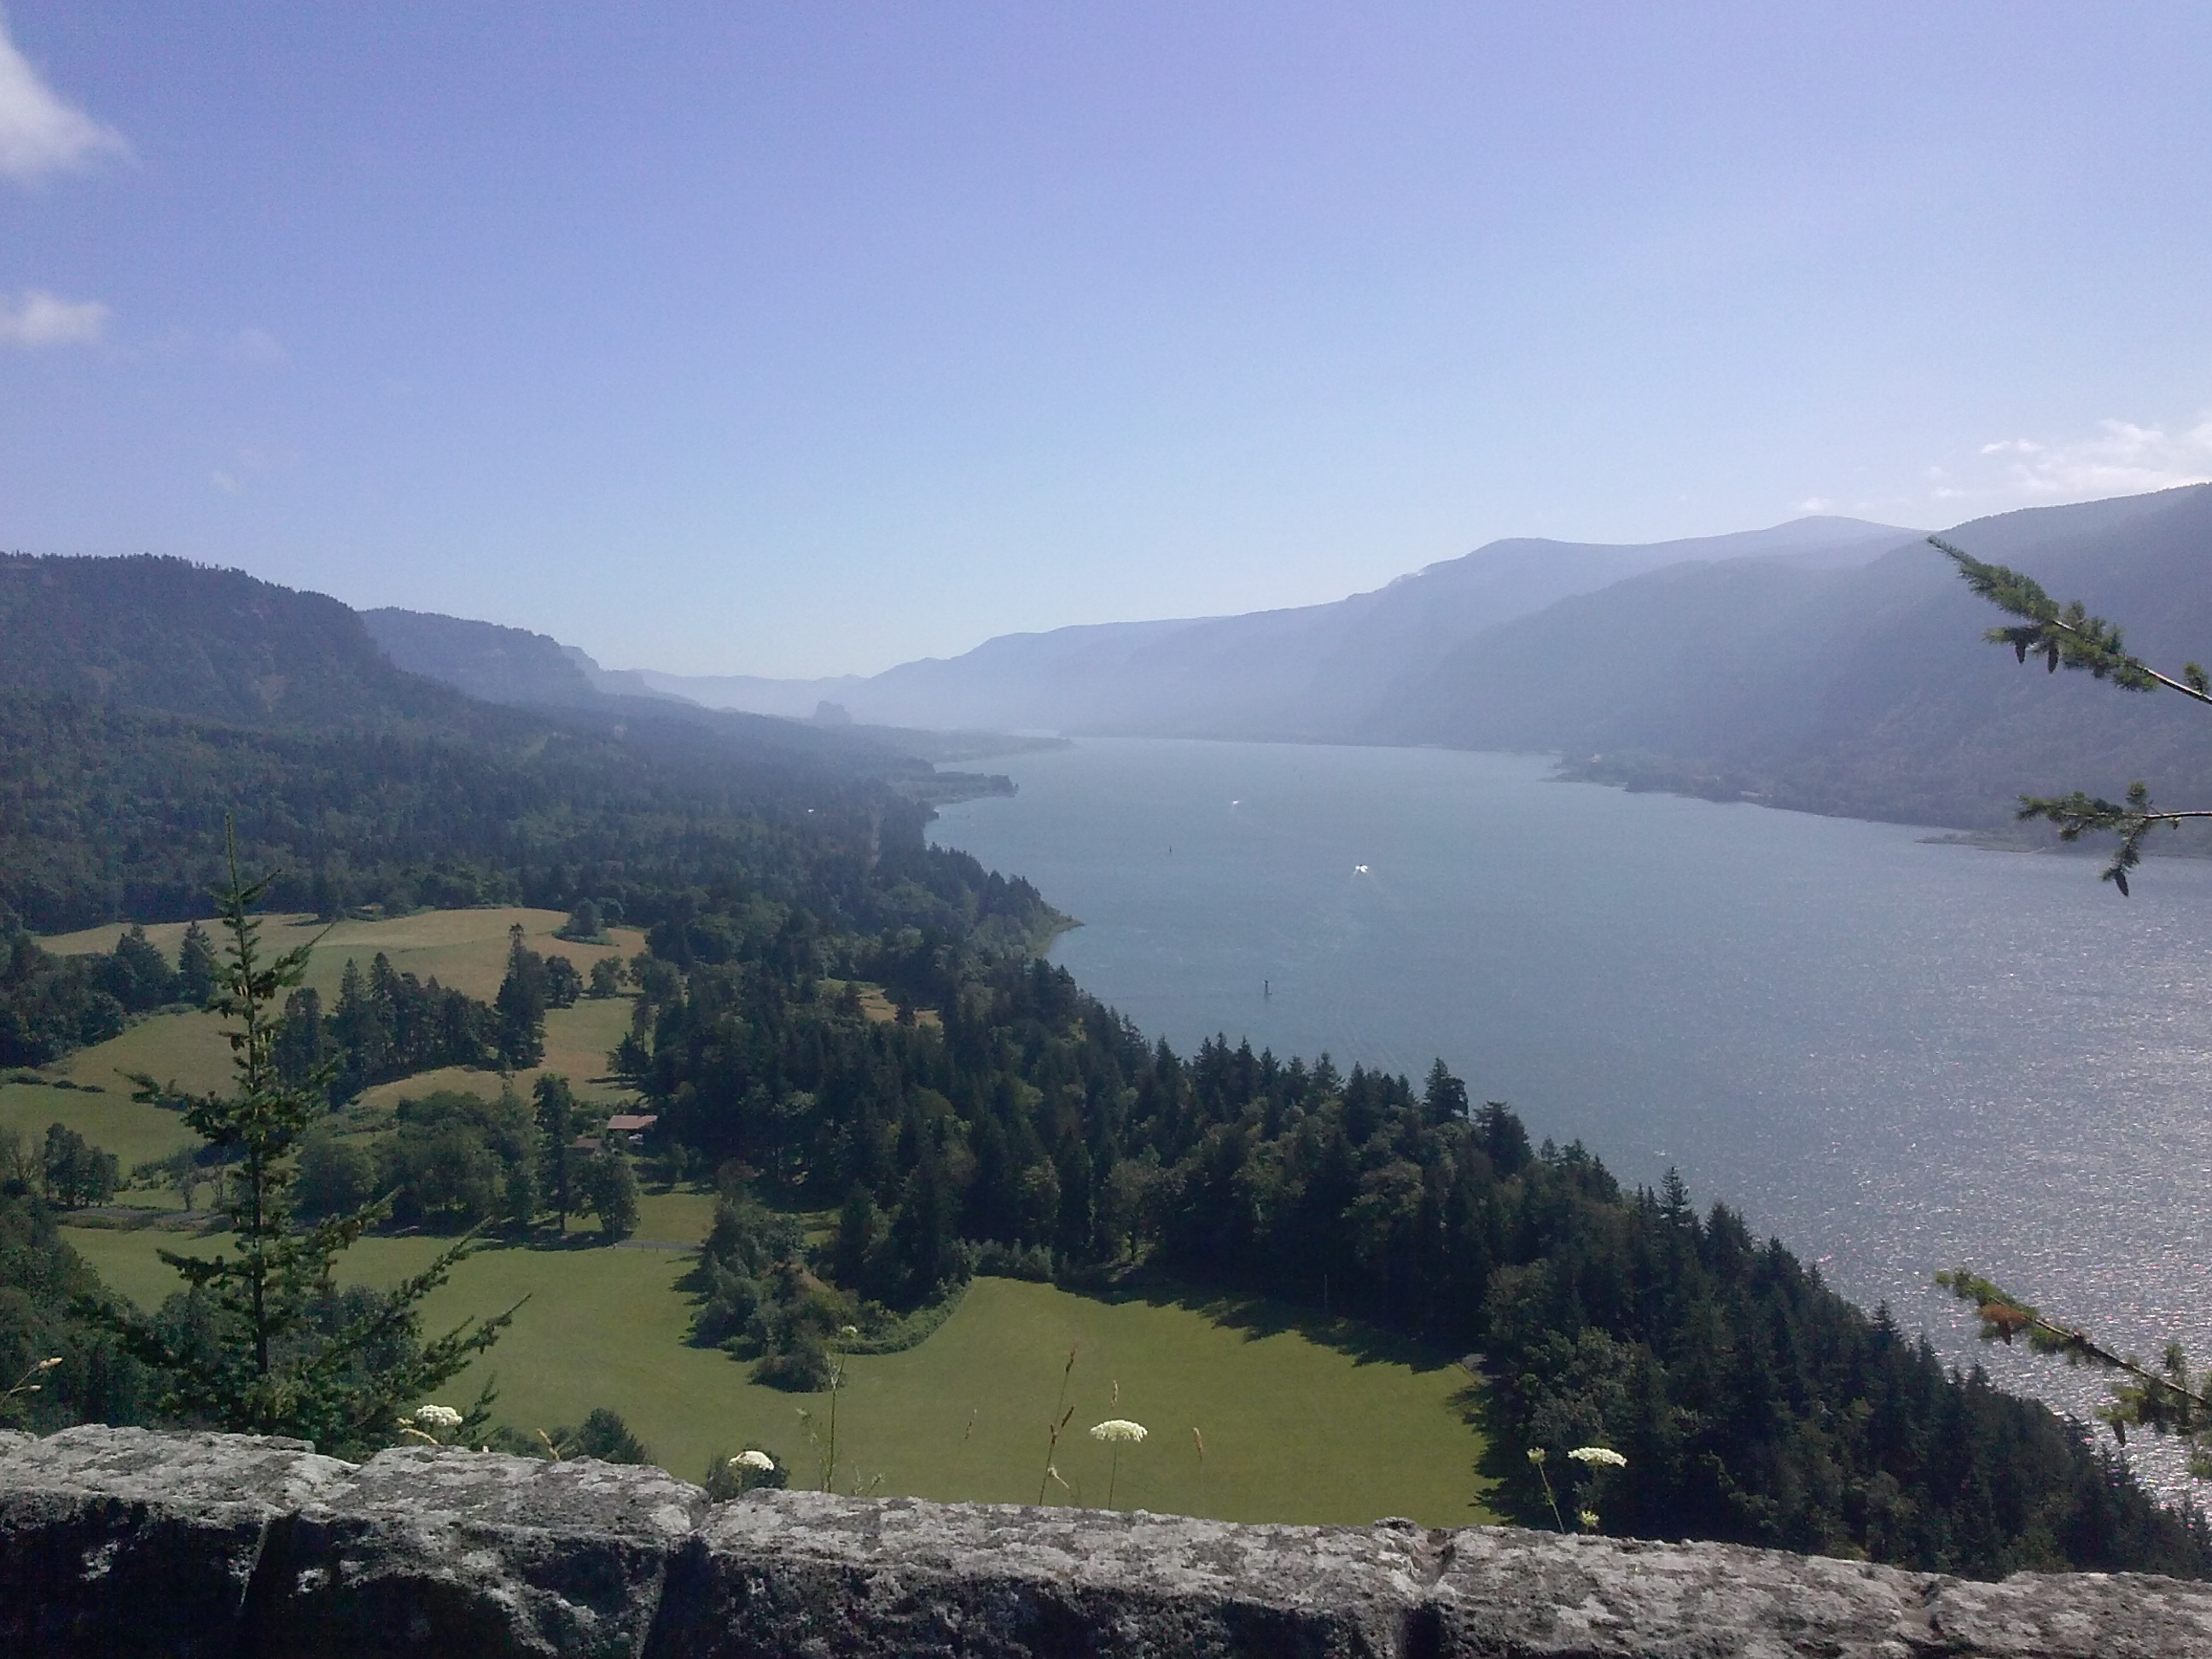 Columbia River Gorge from Washington Side. Photo by Ashley Whitham